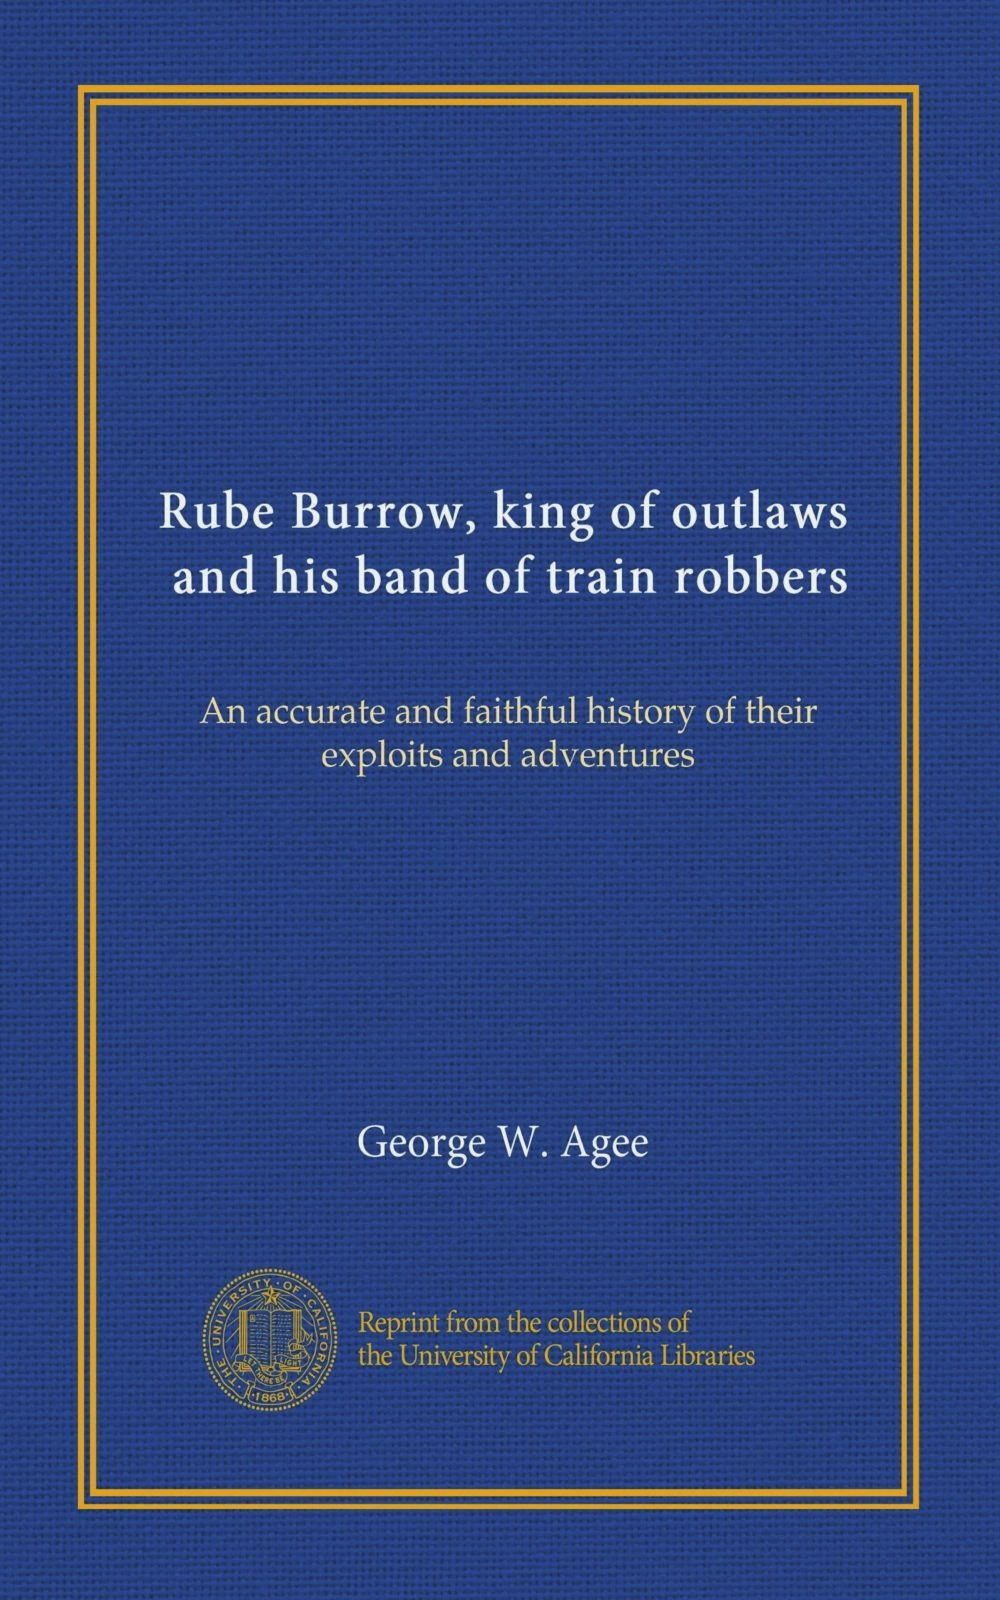 Rube Burrow, king of outlaws, and his band of train robbers: An accurate and faithful history of their exploits and adventures ebook